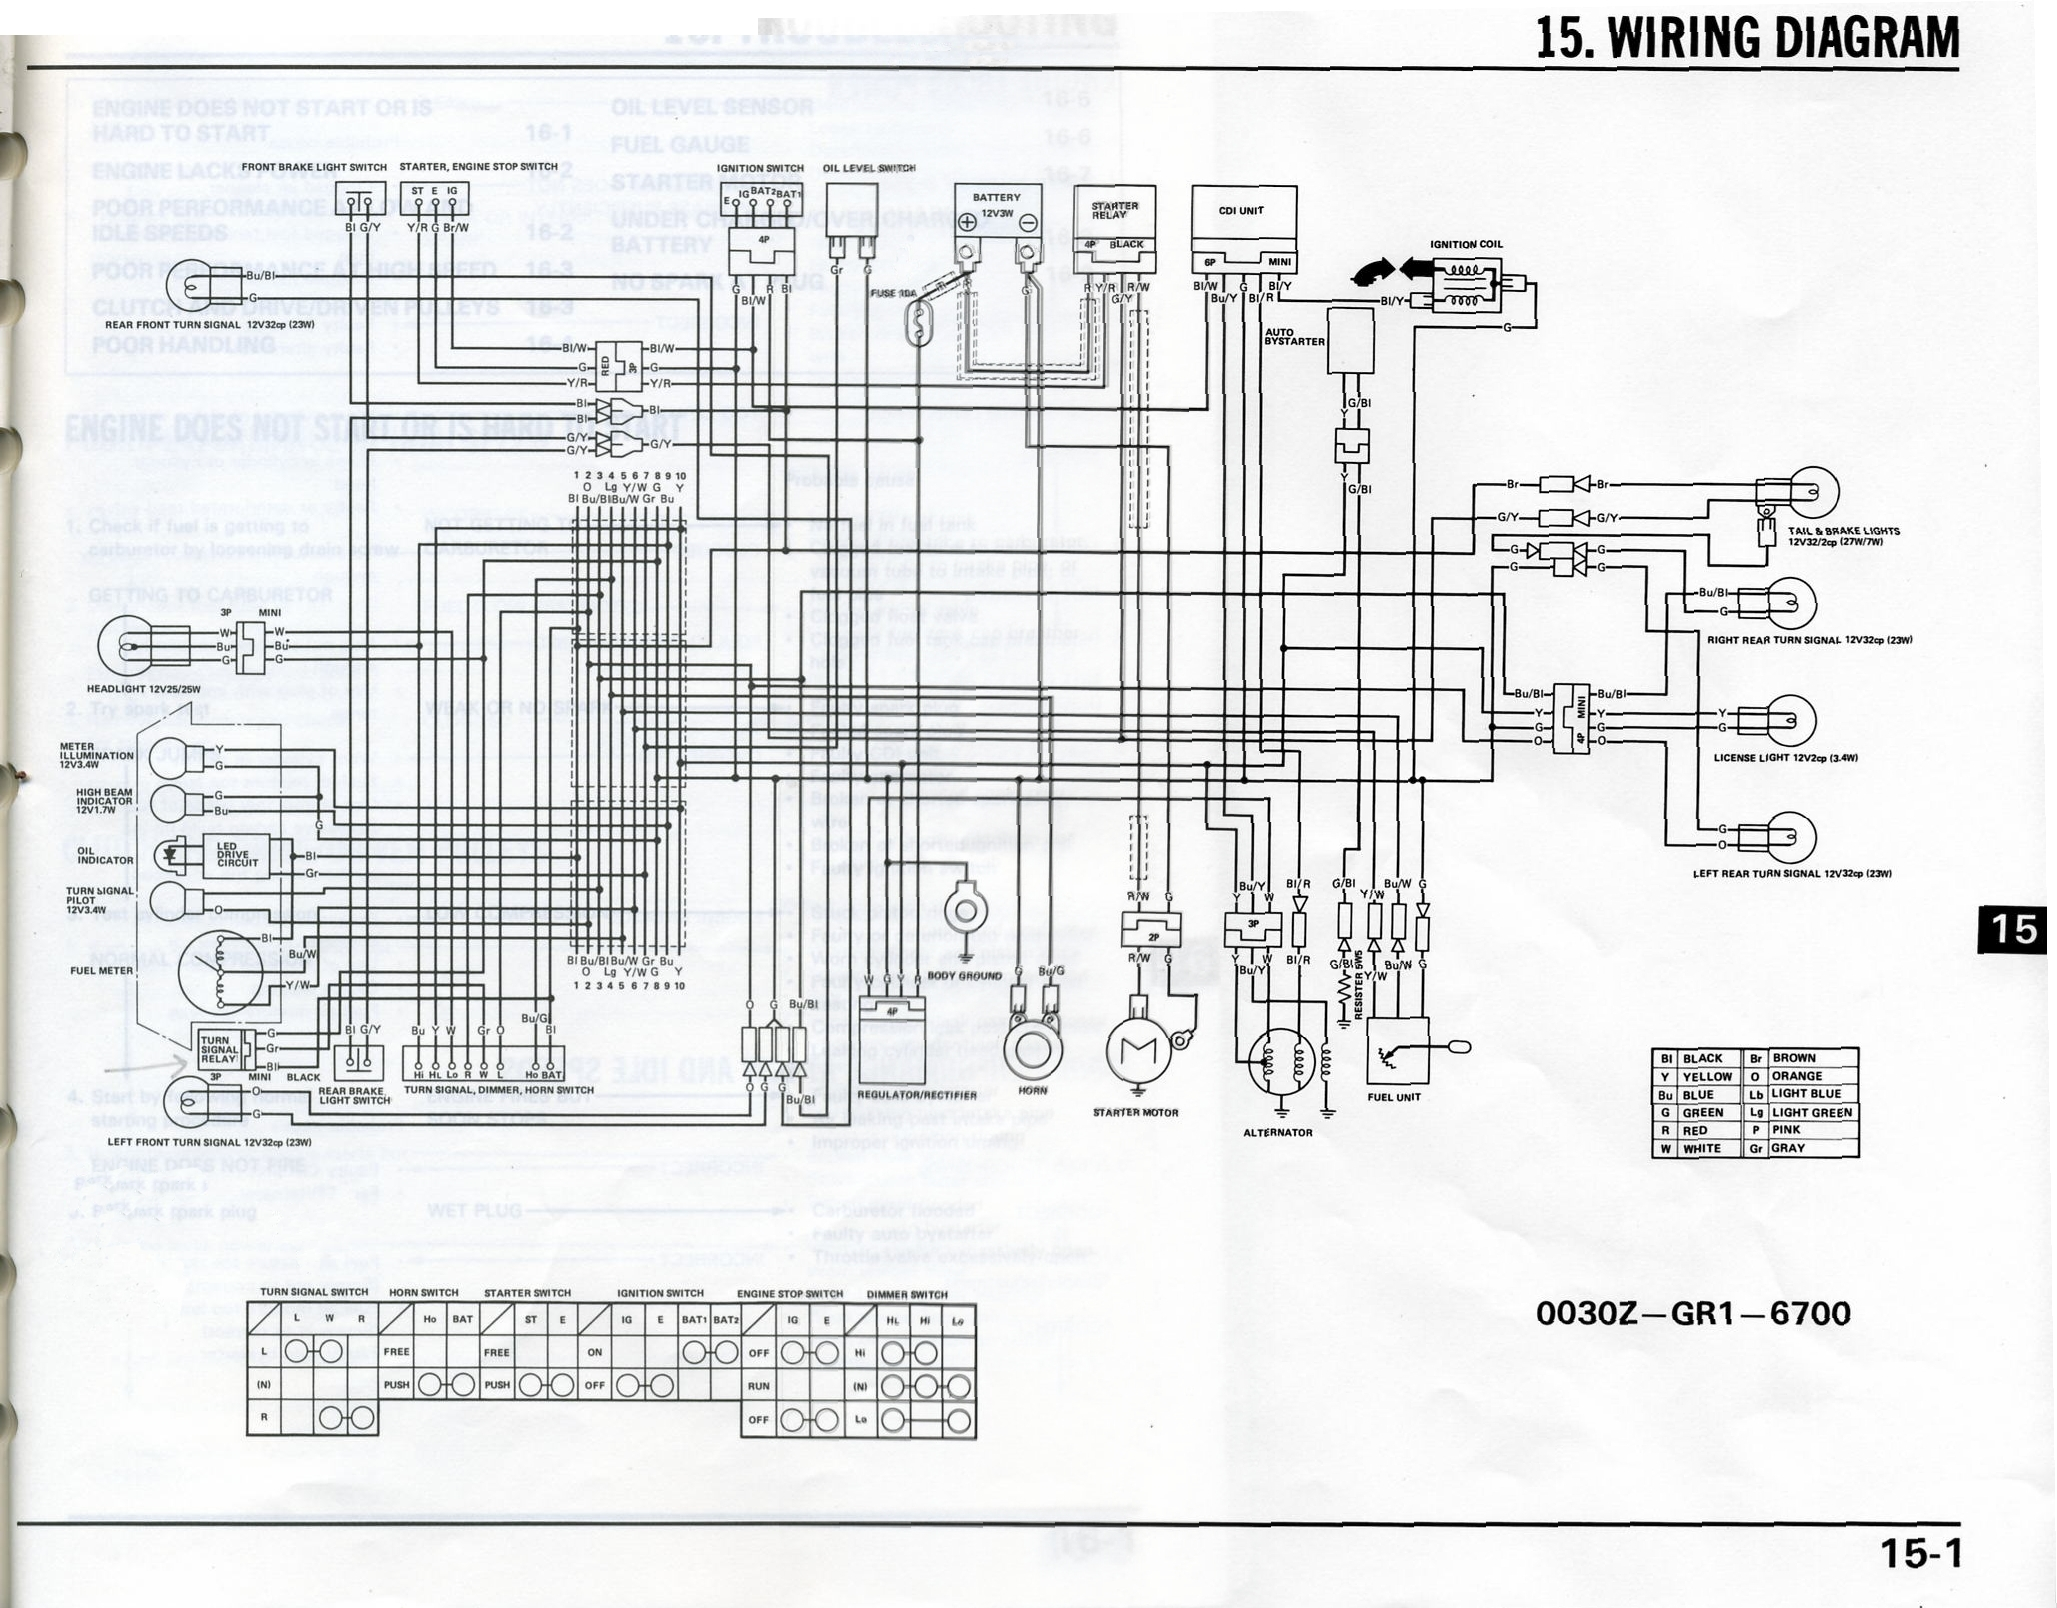 Honda Elite 80 Wiring Diagram - Center Wiring Diagram car-medium -  car-medium.iosonointersex.itiosonointersex.it